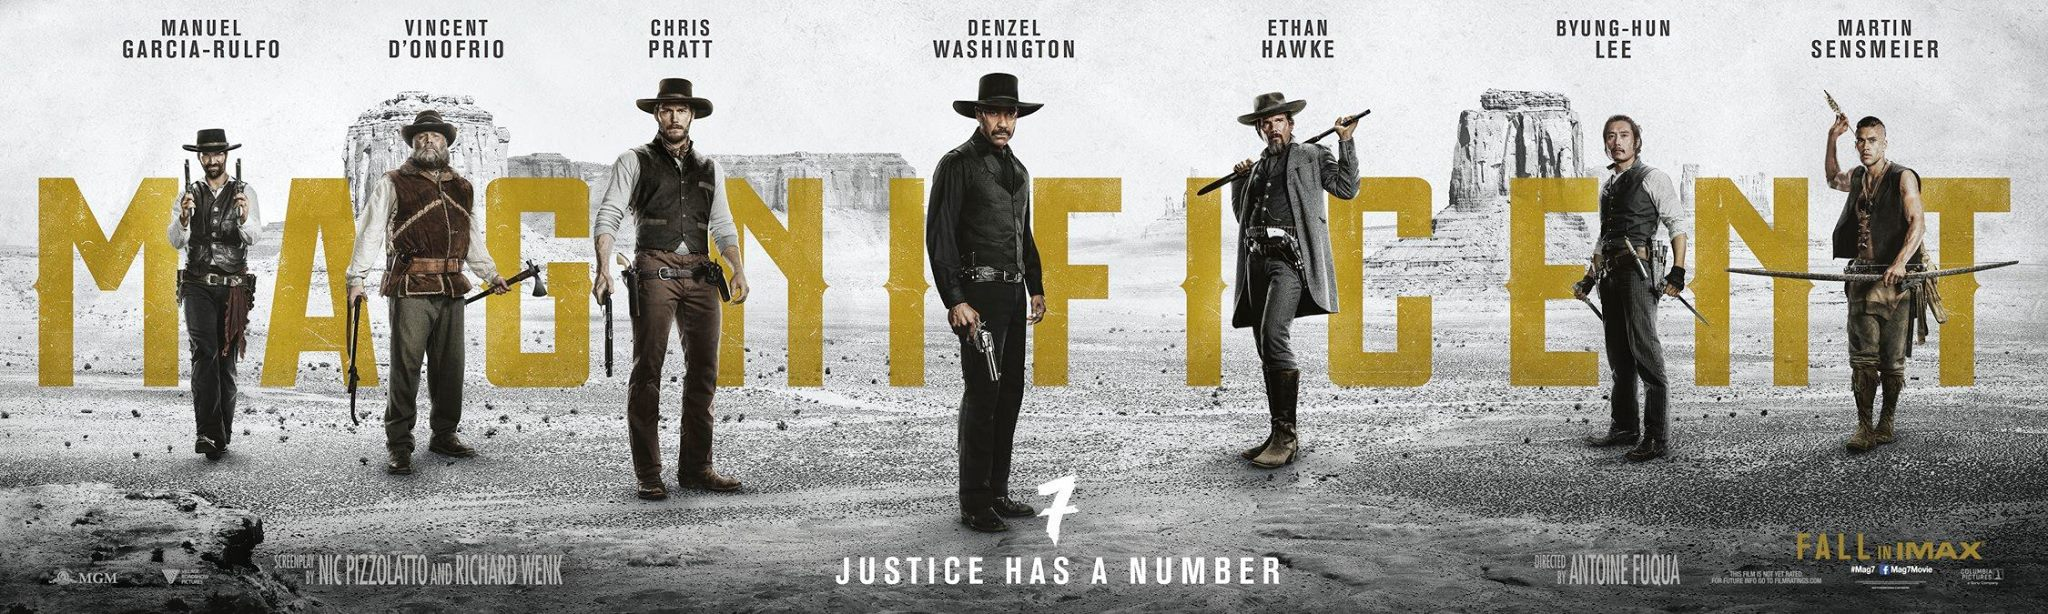 Image Source: The Magnificent Seven Official Facebook